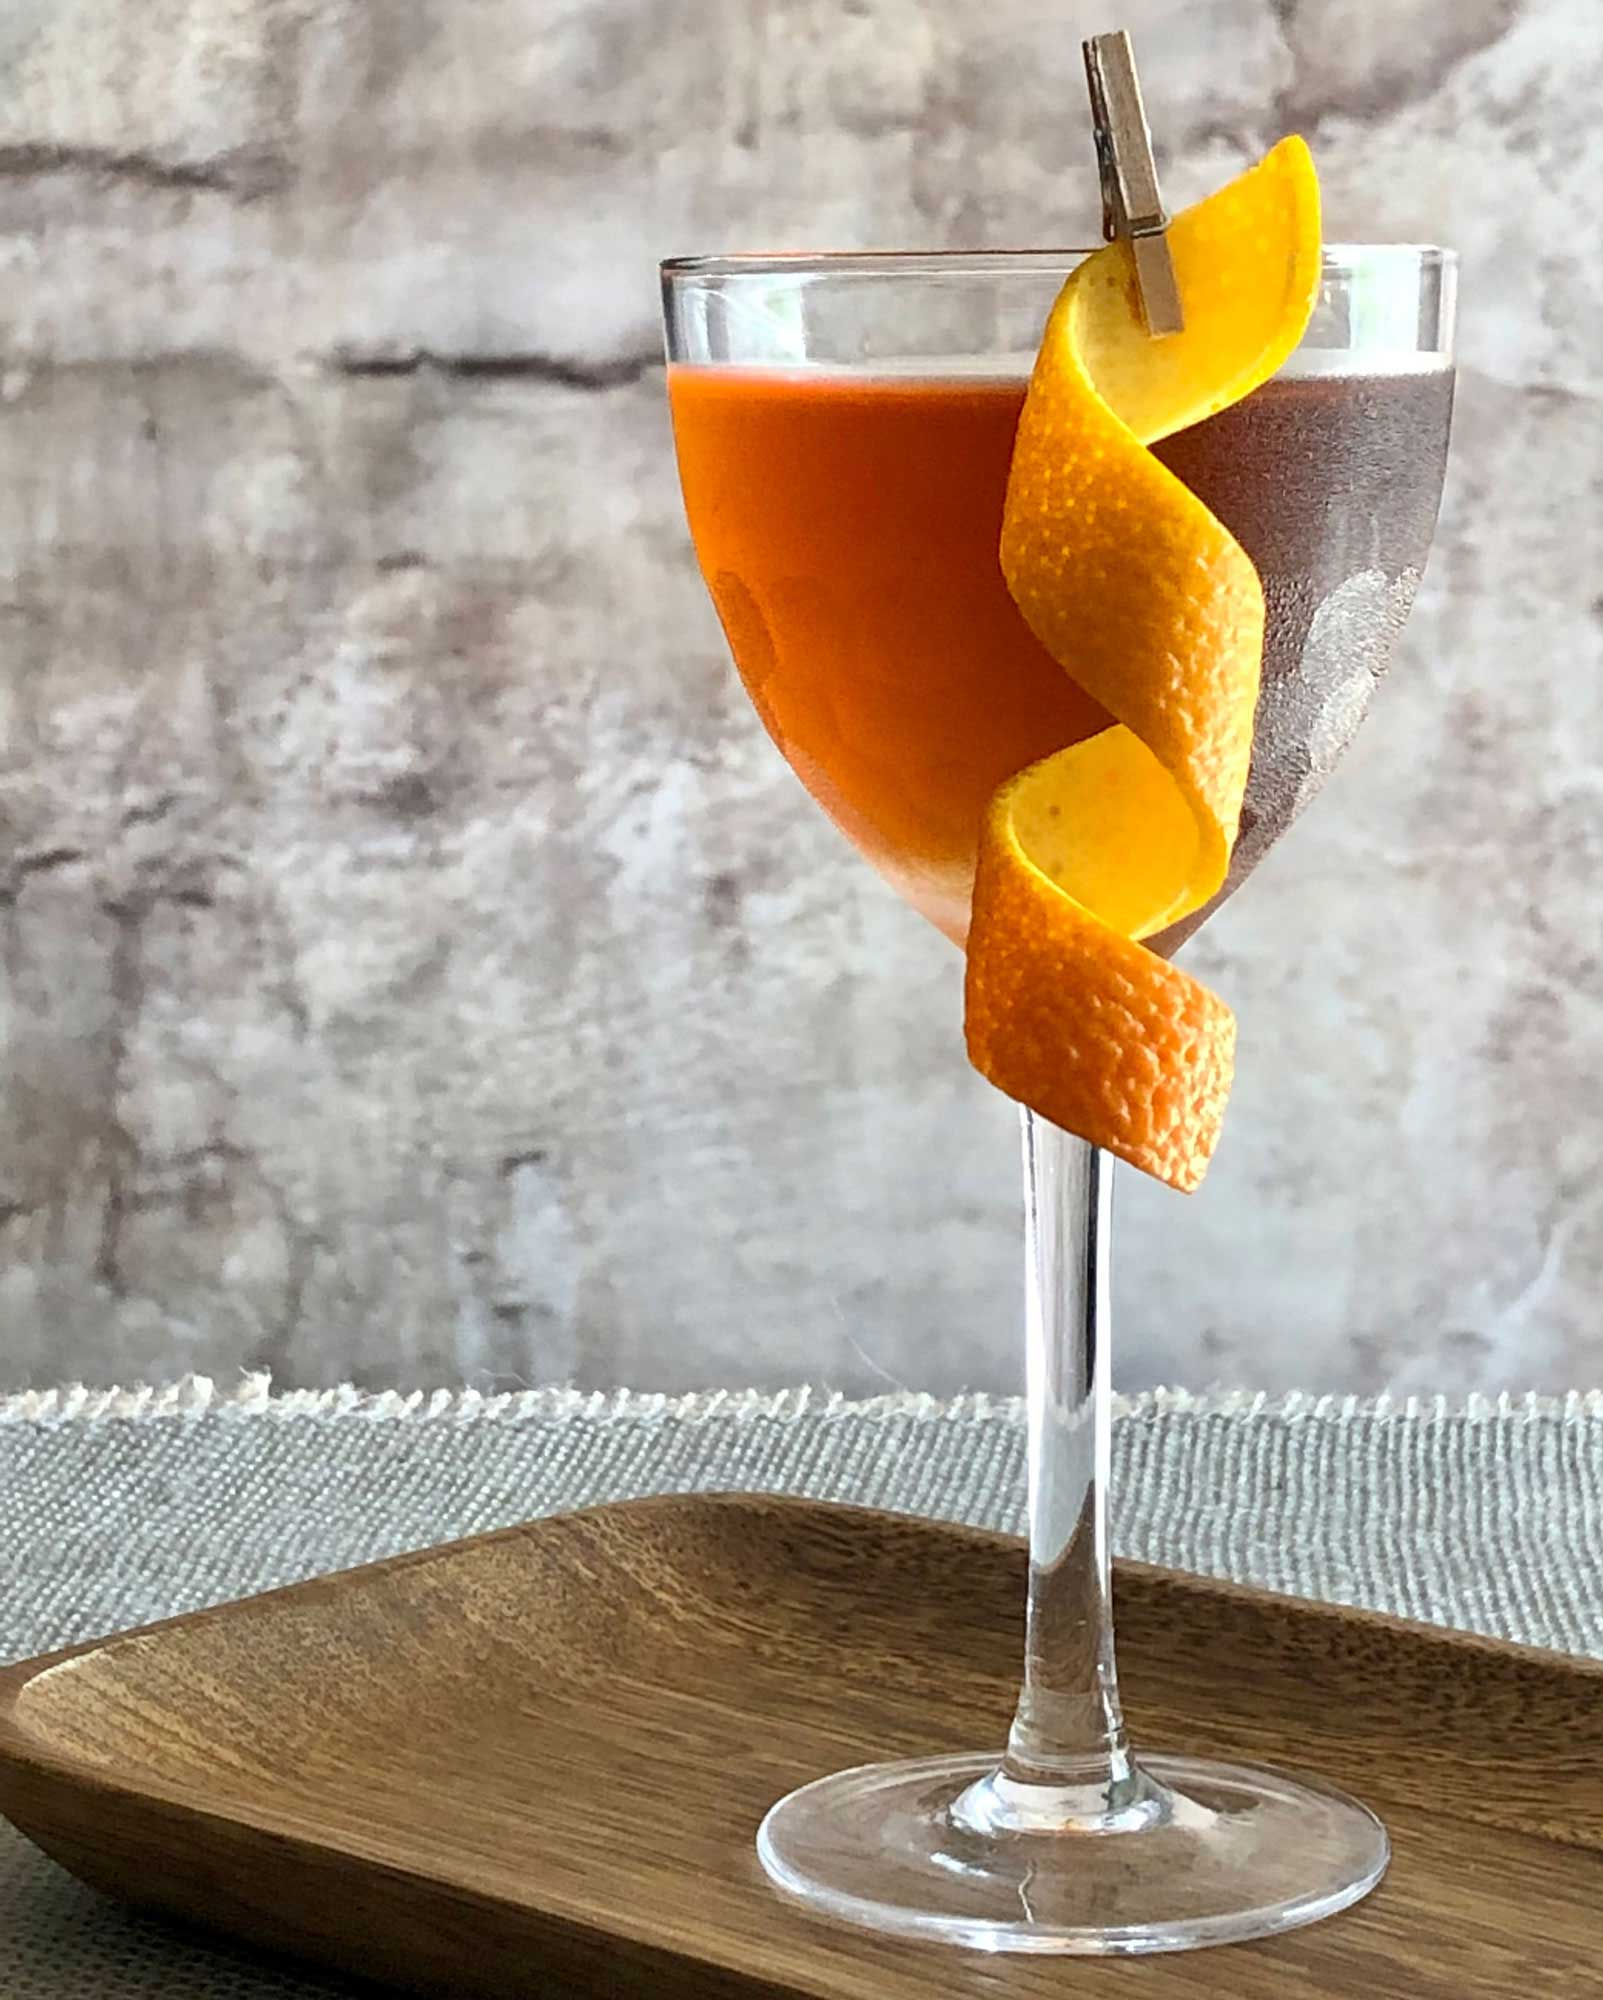 An example of the Tlaquepaque, the mixed drink (cocktail) featuring blanco tequila, Cocchi Vermouth di Torino, and orange bitters; photo by Lee Edwards